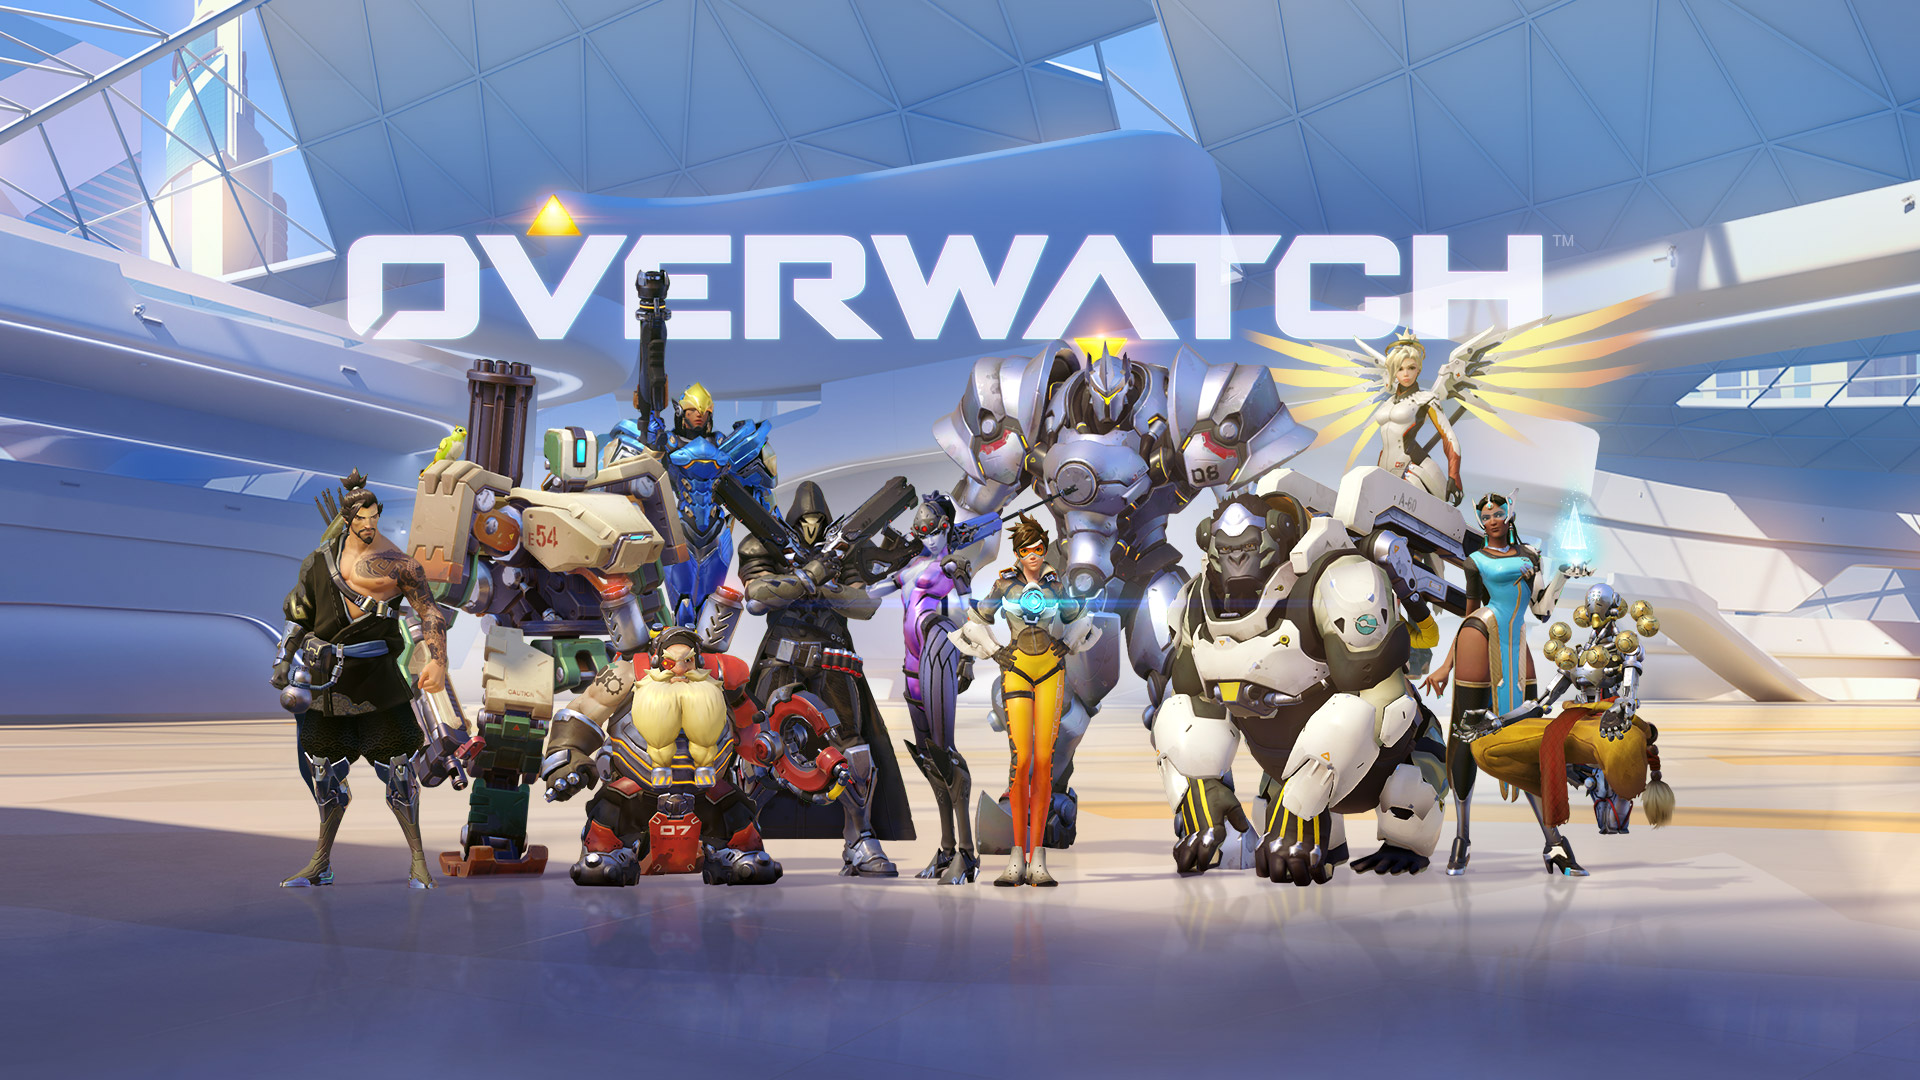 Free Download Overwatch Wallpaper 1080 1920x1080 For Your